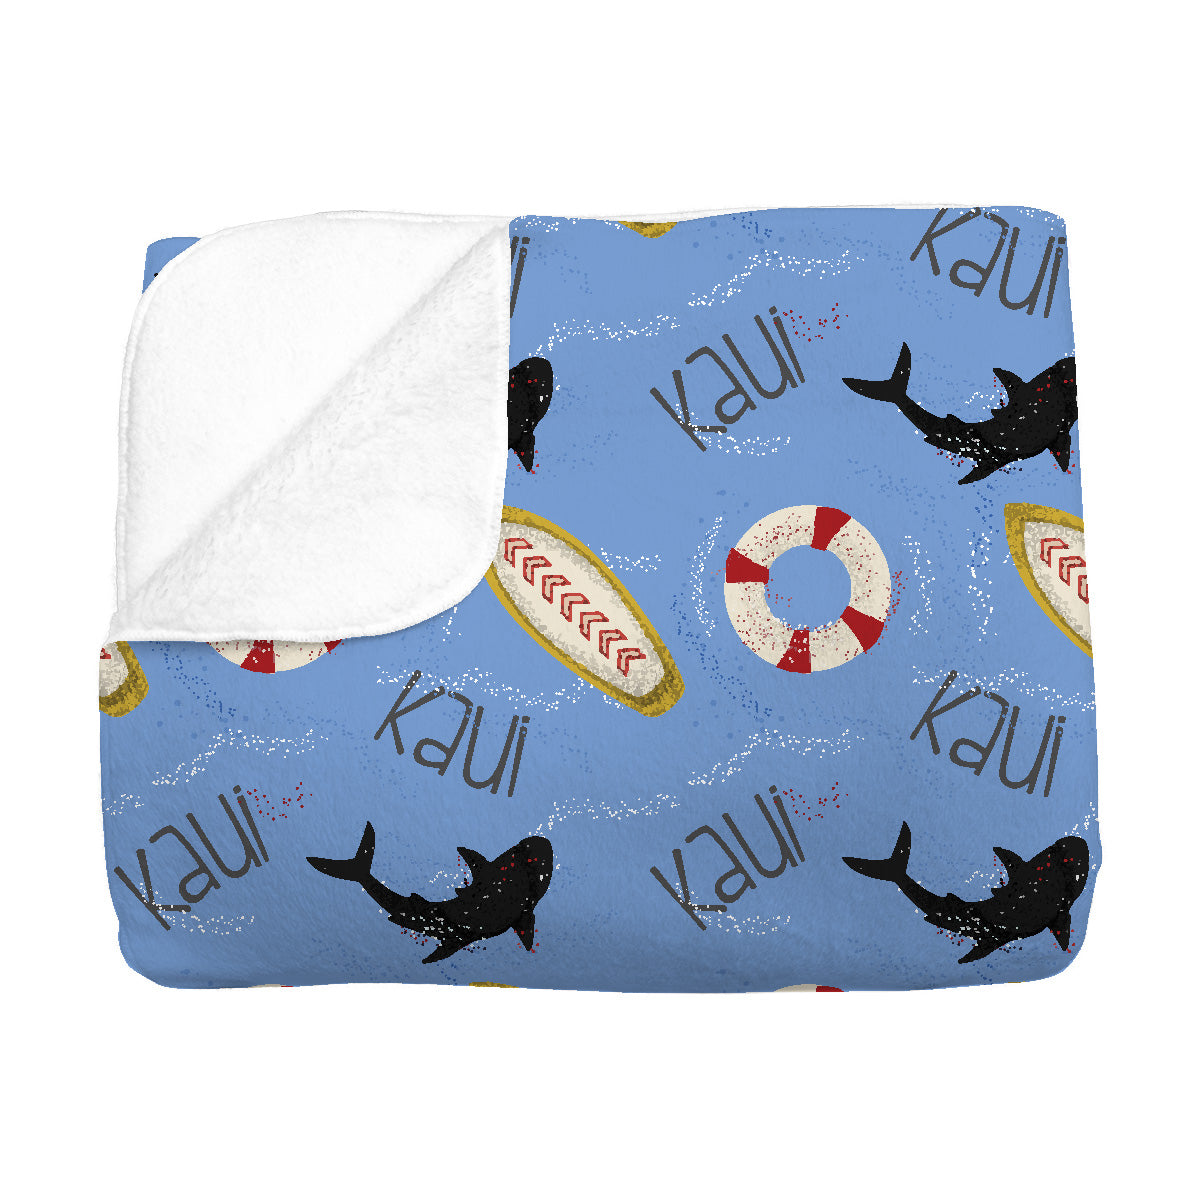 Kaui's Open Surf | Big Kid Blanket